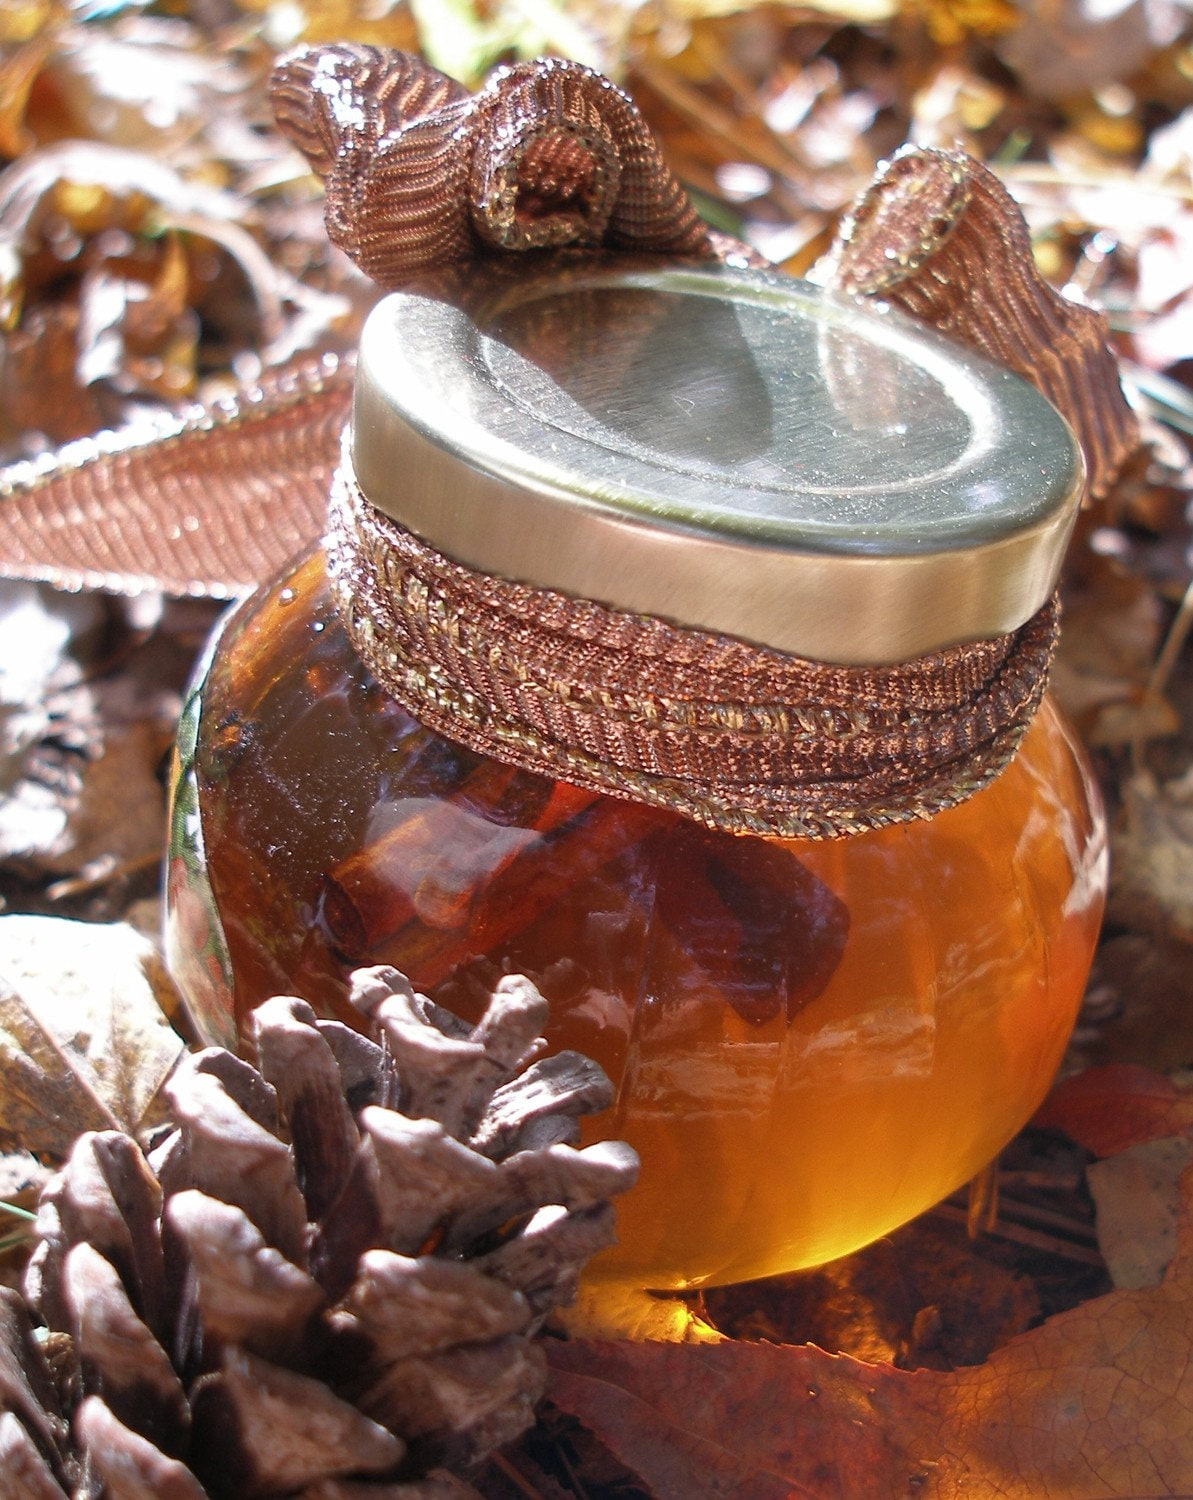 RAW Orange Honey Infused with Cinnamon and Cloves